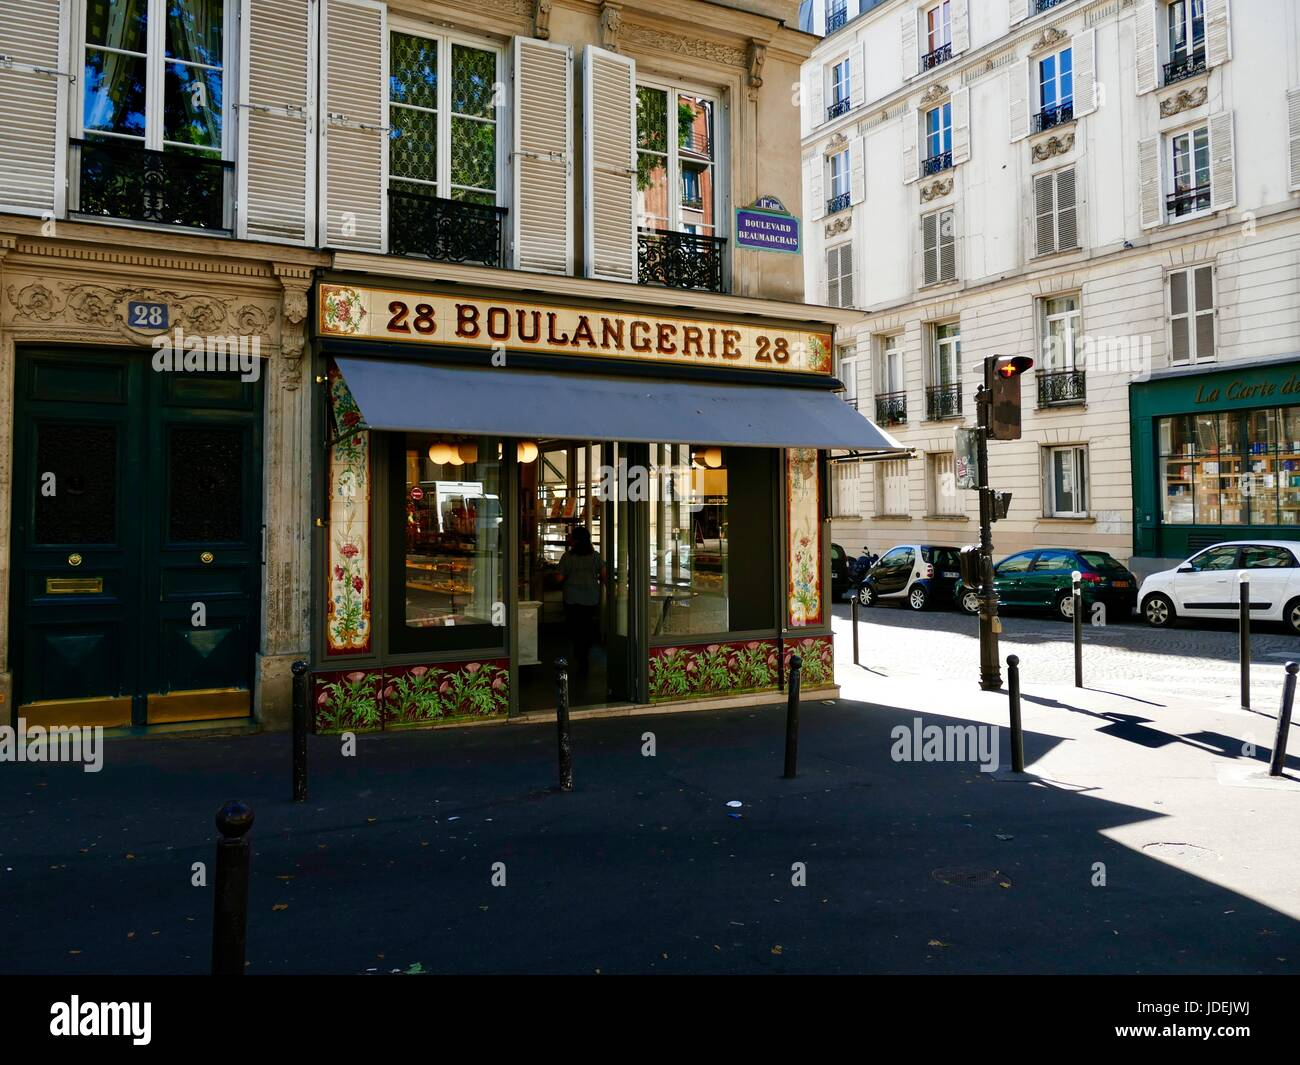 La Boulangerie Beaumarchais, from front, in shadow with side street in sunlight, during June heat wave. Paris, France. - Stock Image